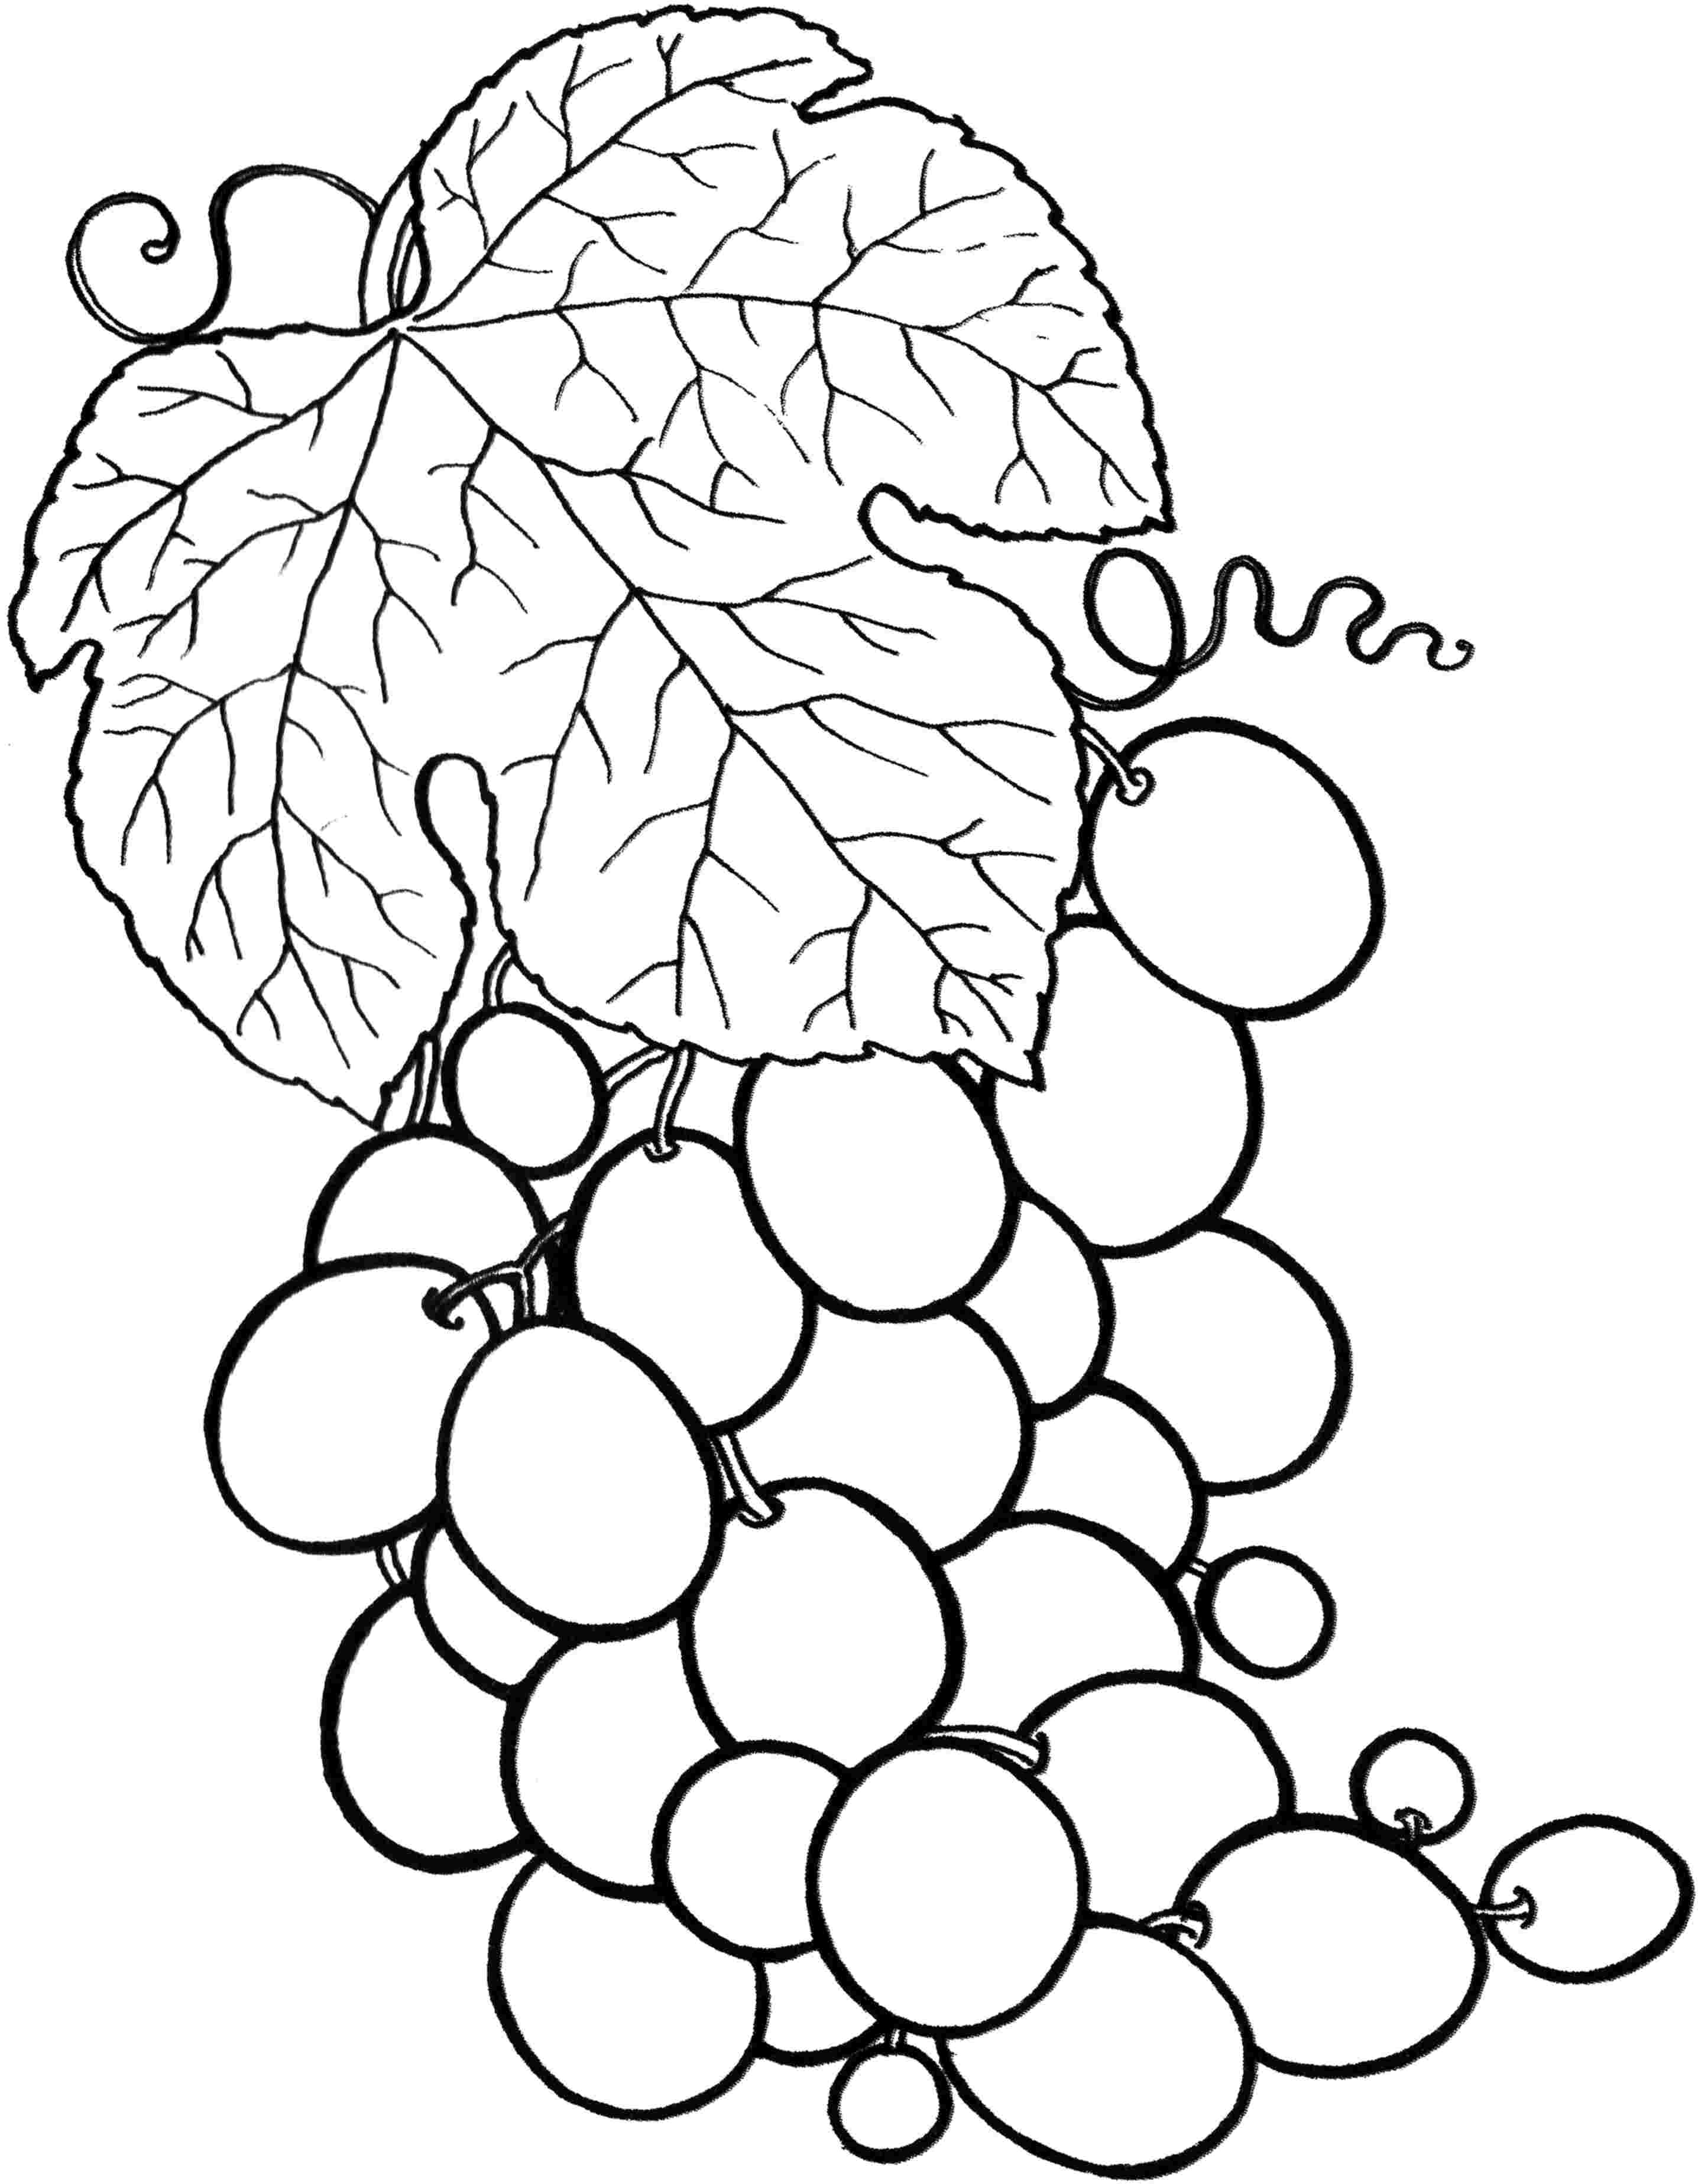 fruit coloring sheet fruit salad coloring pages download and print for free sheet fruit coloring